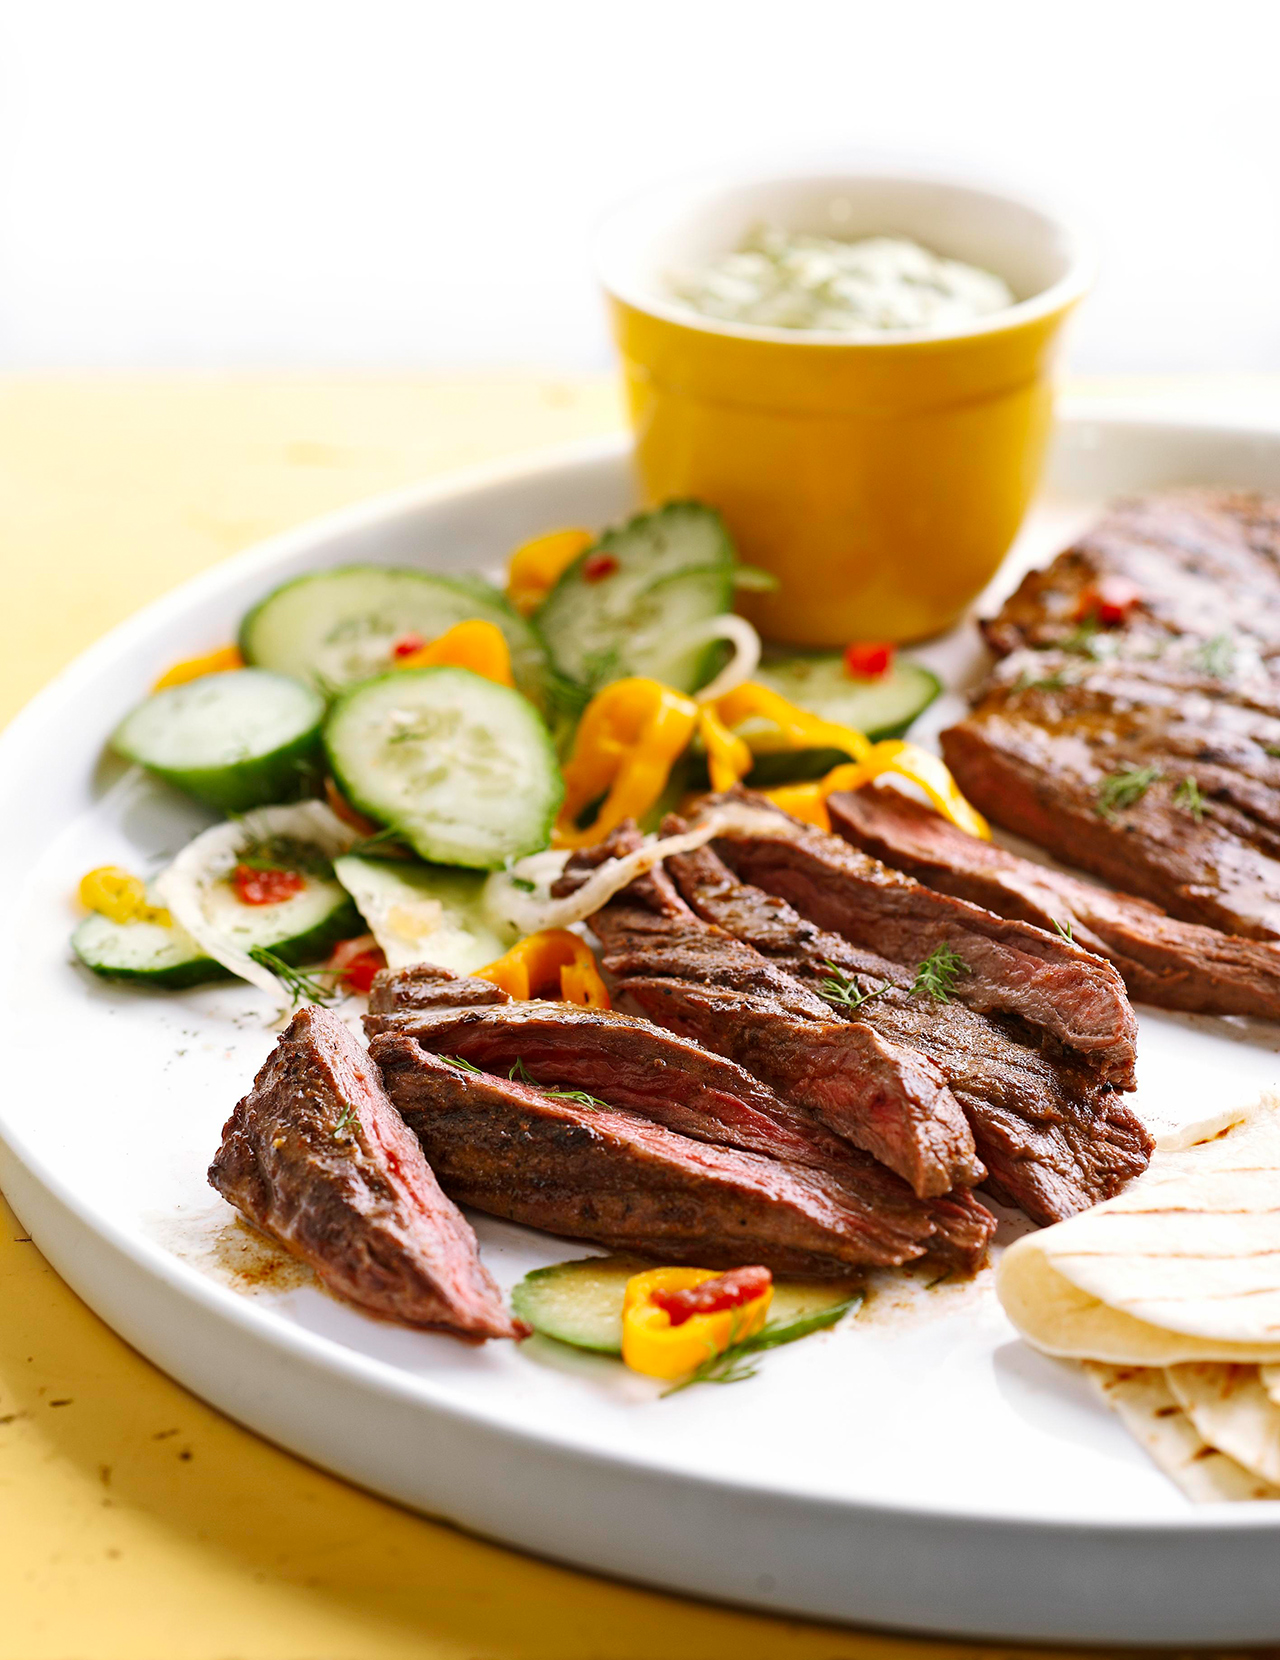 Spicy Skirt Steak with Avocado Dipping Sauce